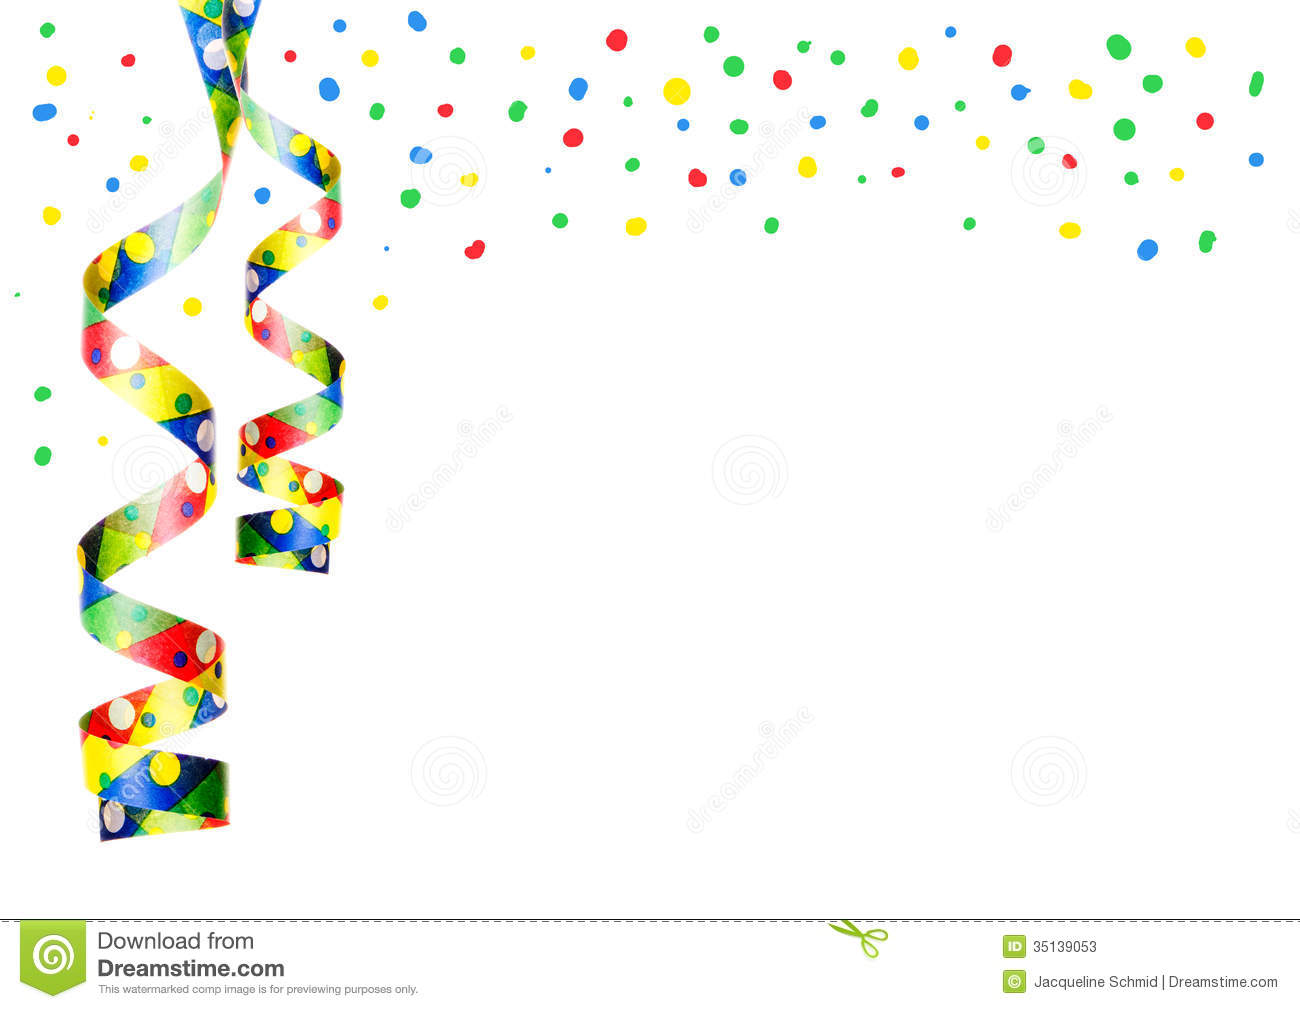 Confetti Png Transparent Party Confetti Png For Parties